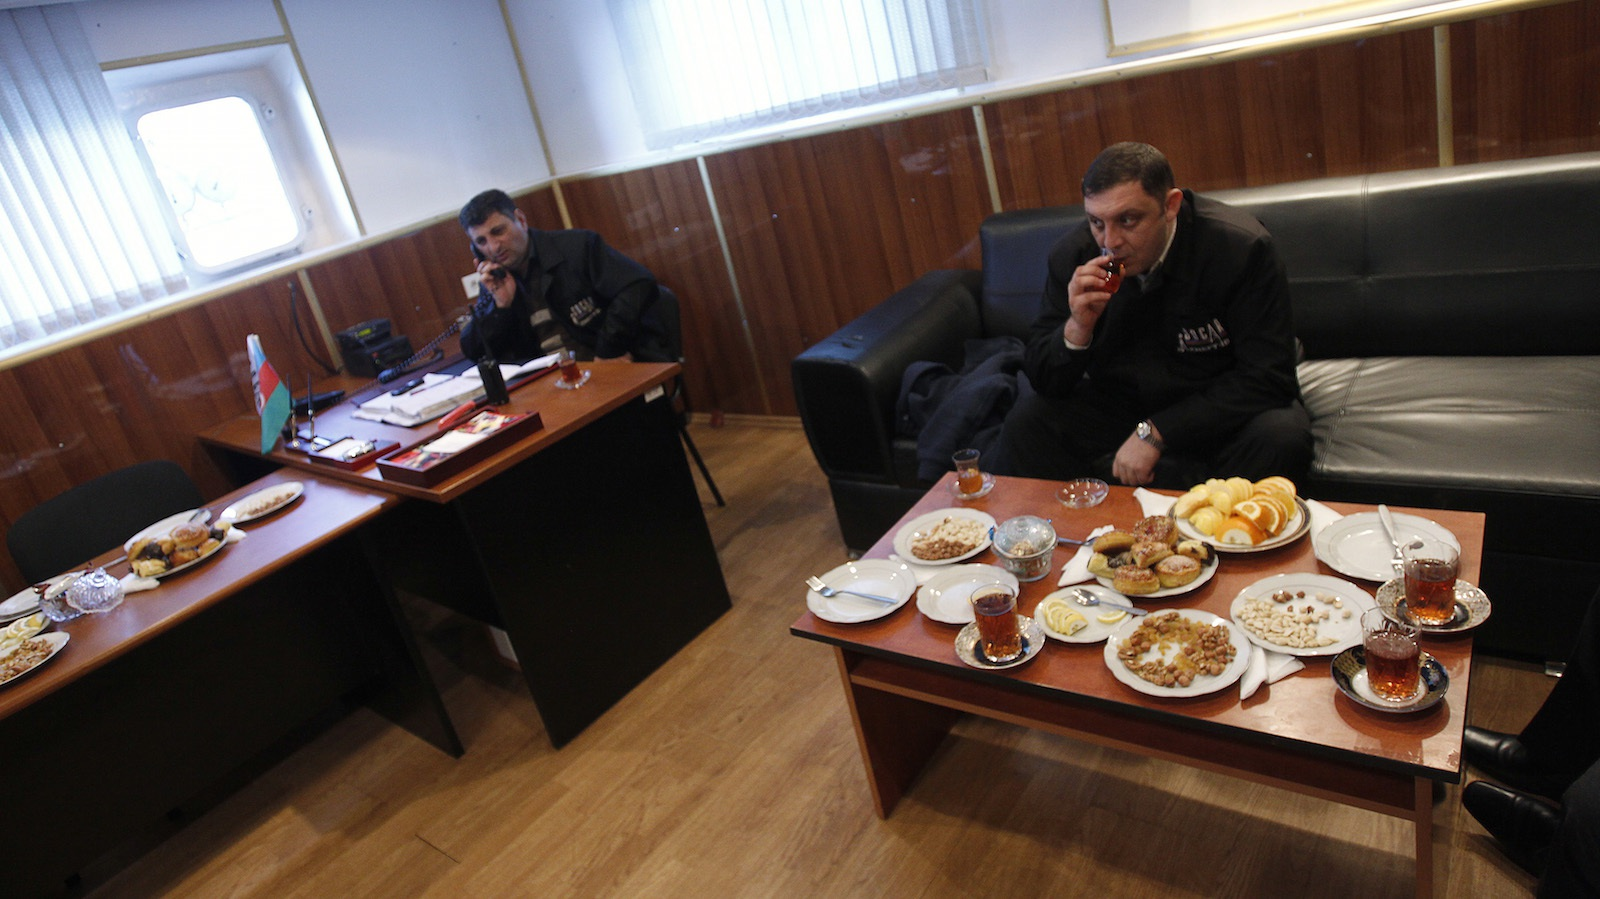 Oil worker Namik Aliyev (R) drinks a cup of tea during a short break as his chief Anar Jafarov speaks on the phone on an oil platform in Caspian Sea, about 100 km (62 miles) east of  Baku, January 22, 2013. Aliyev, 32, like the country of Azerbaijan itself, has oil in his blood. His father and grandfather both worked in oil production, an industry which dates back to the 19th century in Azerbaijan and contributes more than half of the country's gross domestic product (GDP).  Picture taken January 22, 2013. REUTERS/David Mdzinarishvili (AZERBAIJAN - Tags: ENERGY ENVIRONMENT BUSINESS SOCIETY)  ATTENTION EDITORS: PICTURE 16 OF 26 FOR PACKAGE 'OIL IN THE BLOOD' SEARCH 'BAKU OIL' FOR ALL IMAGES - RTR3DC4D